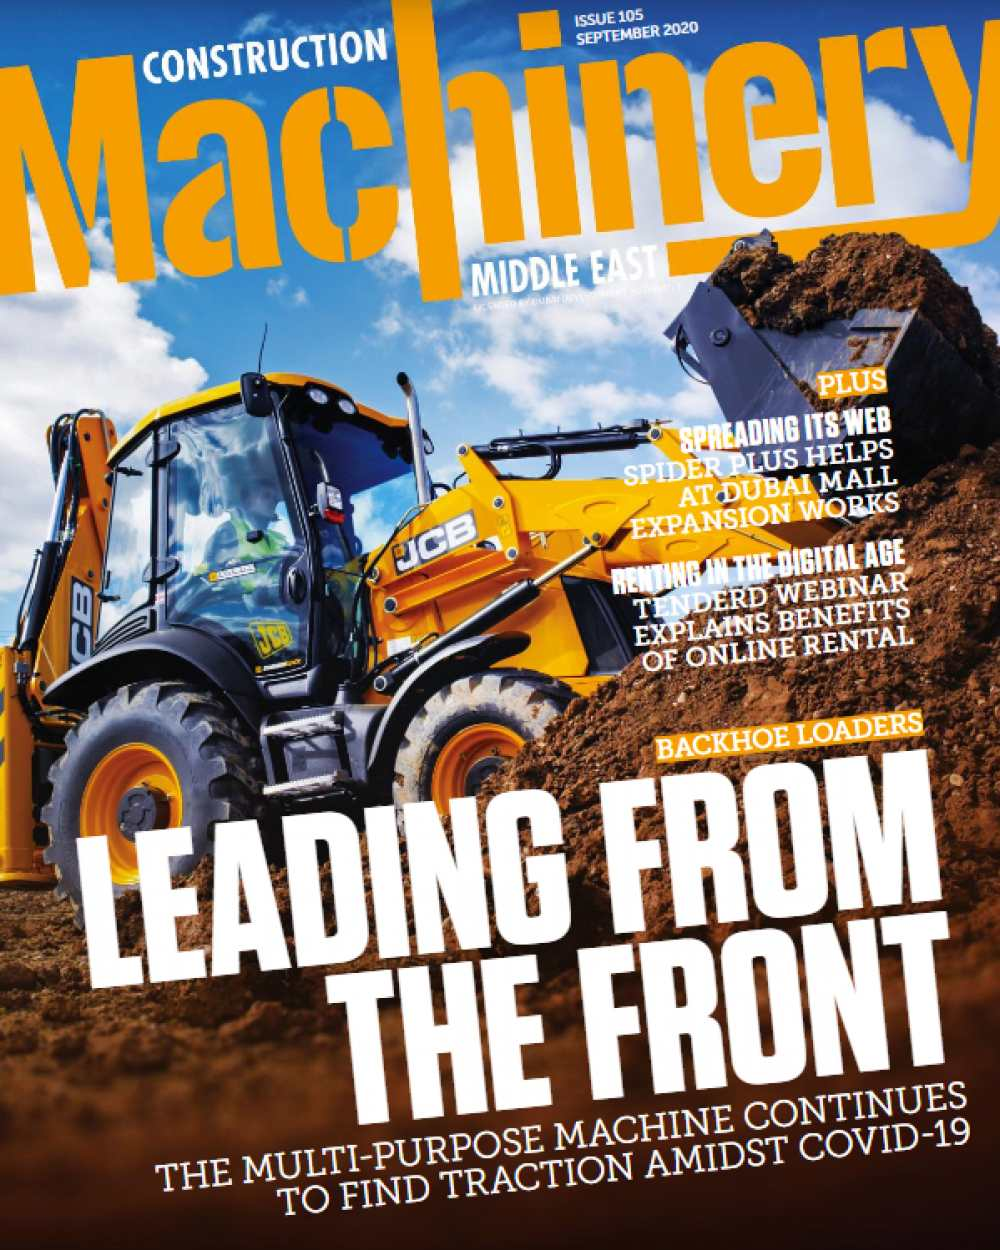 NTN SNR Industrial Tools at Construction Machinery Middle East September 2020 Issue